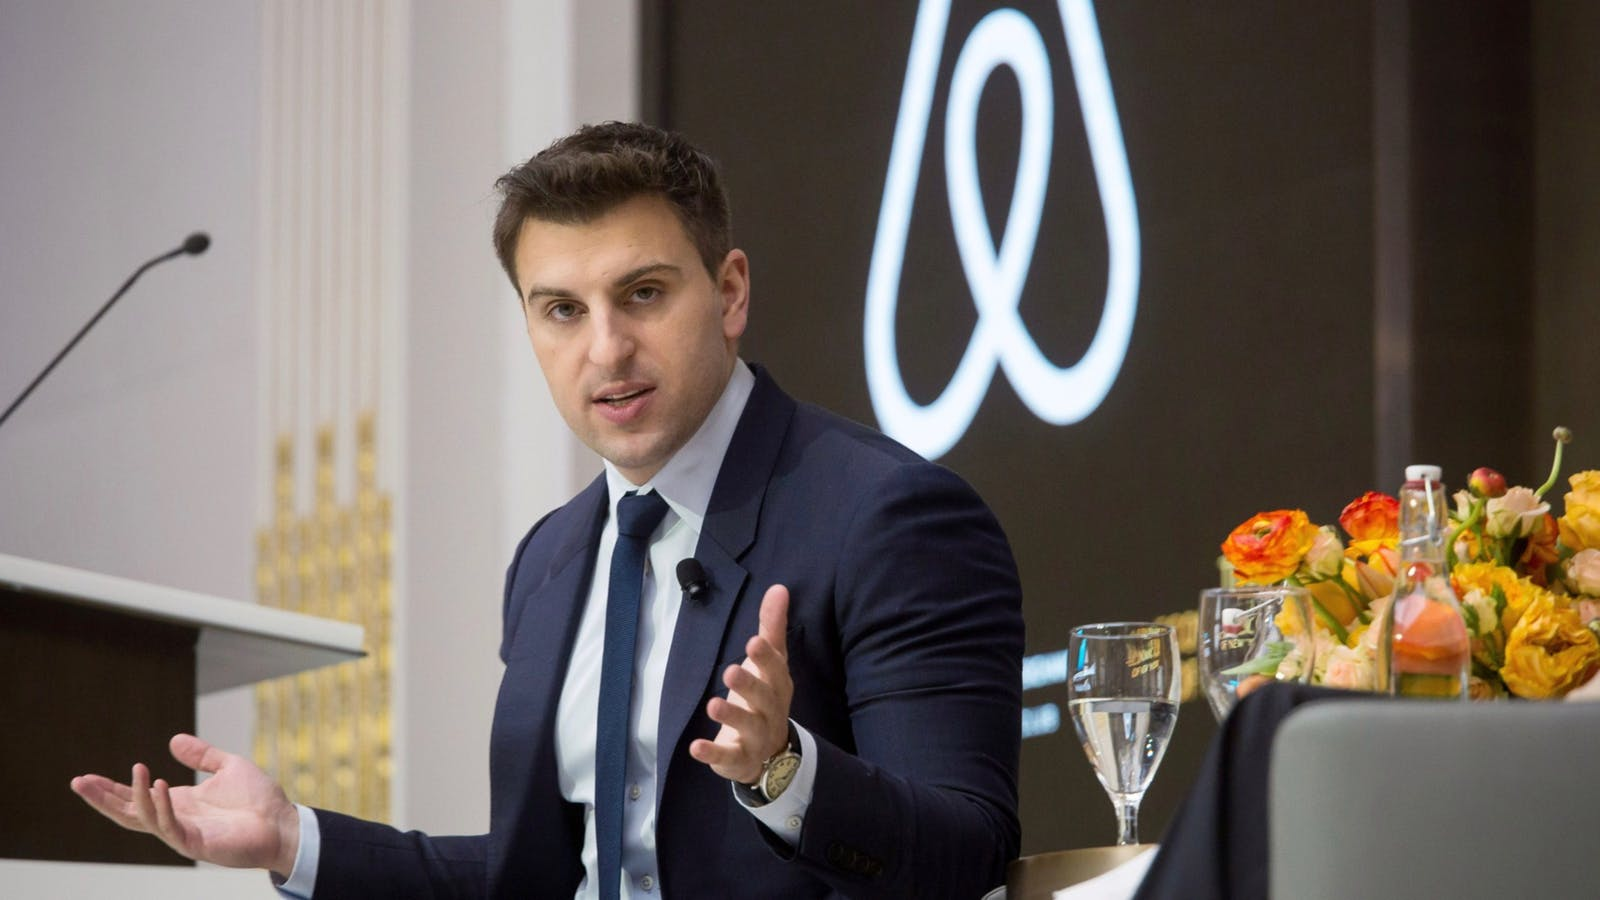 Airbnb CEO Brian Chesky in 2017. Photo: Bloomberg